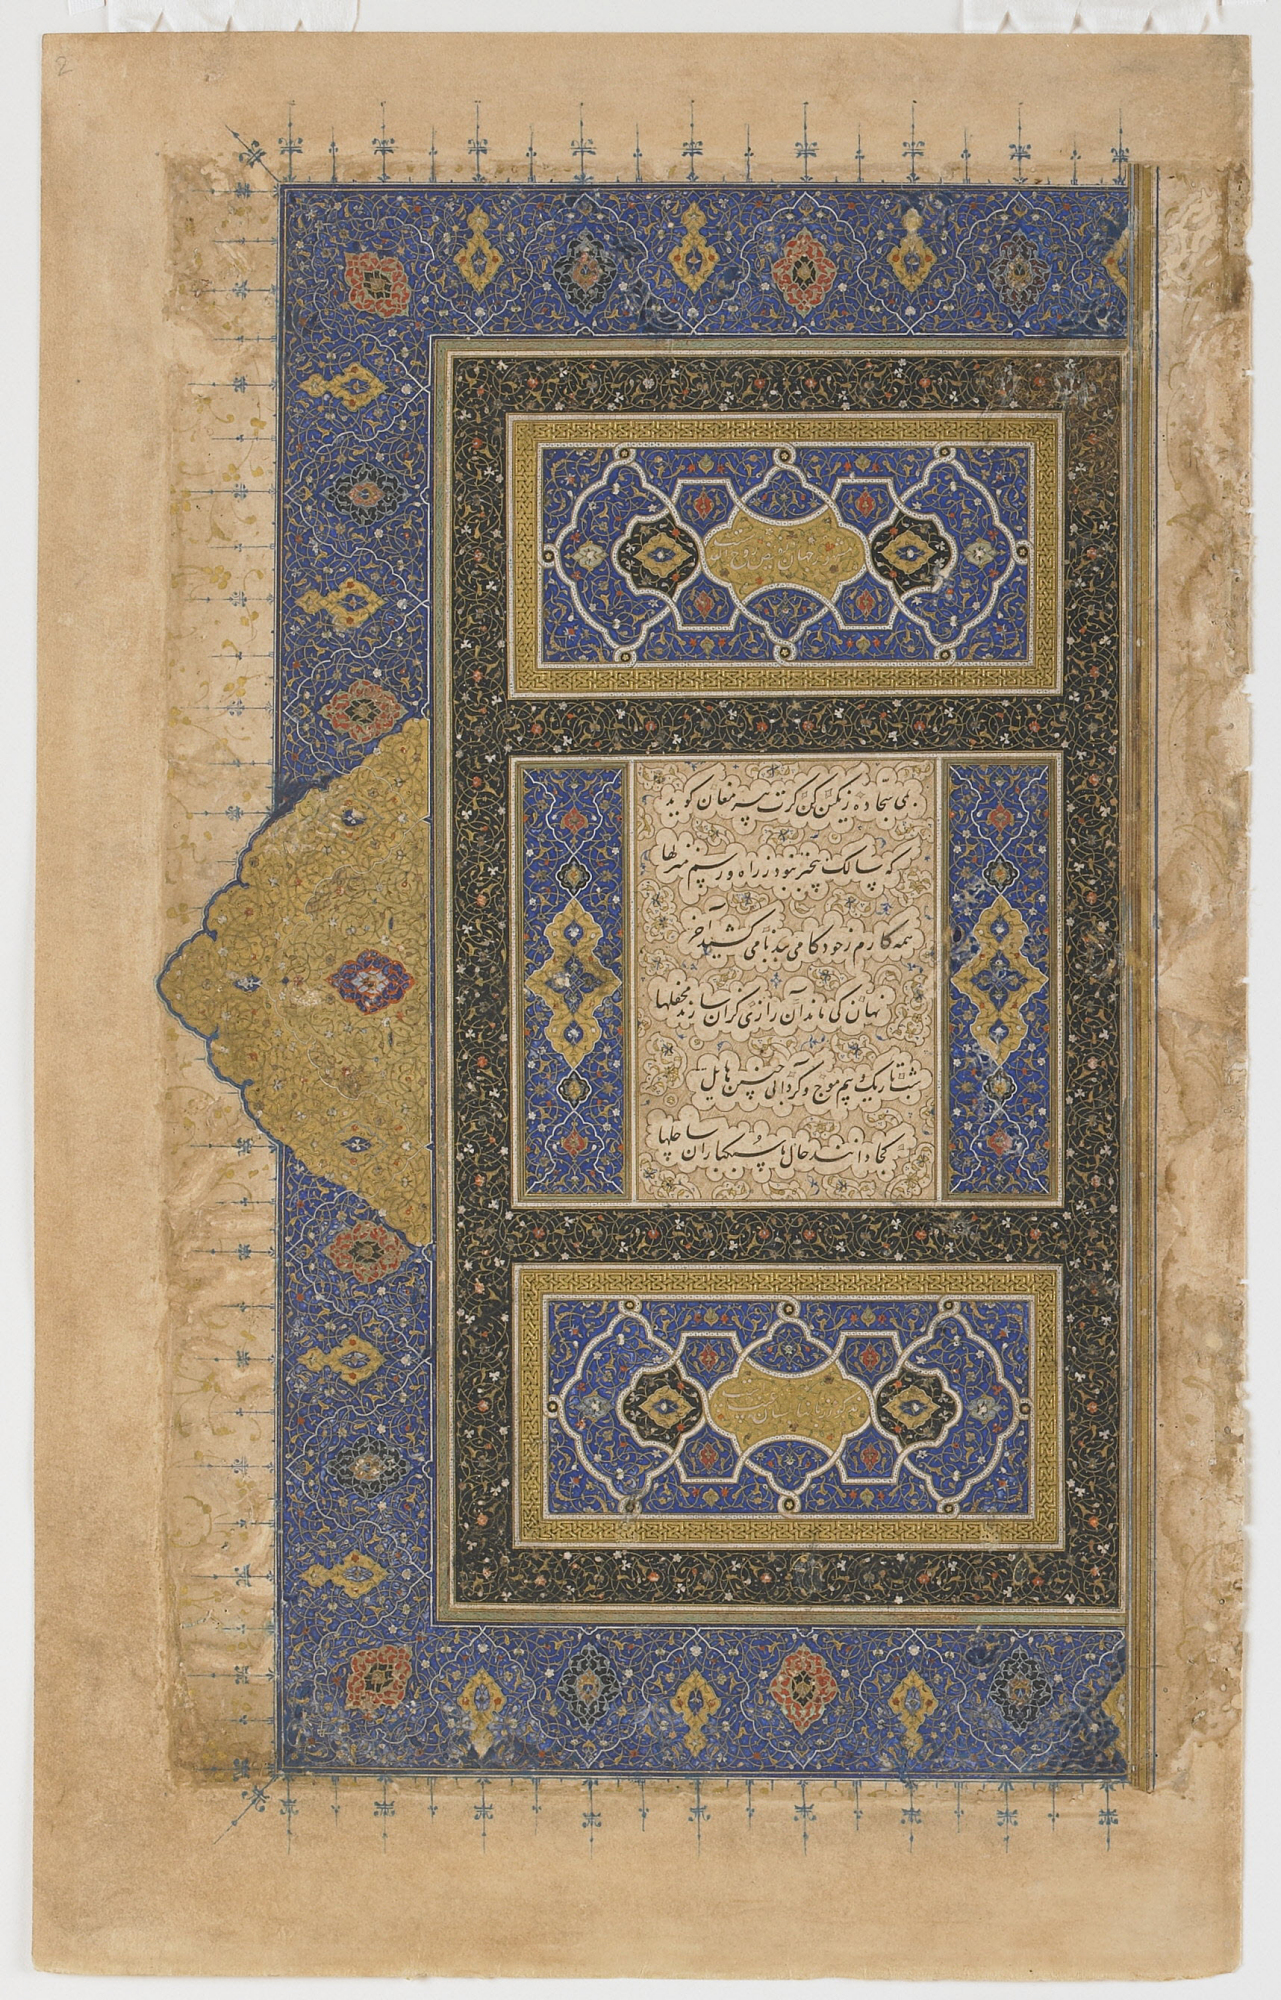 Folio from a Divan (collected poems) by Hafiz (d. 1390); recto: left-hand half of a double-page frontispiece; verso: text, poem of spiritual love and moral rectitude